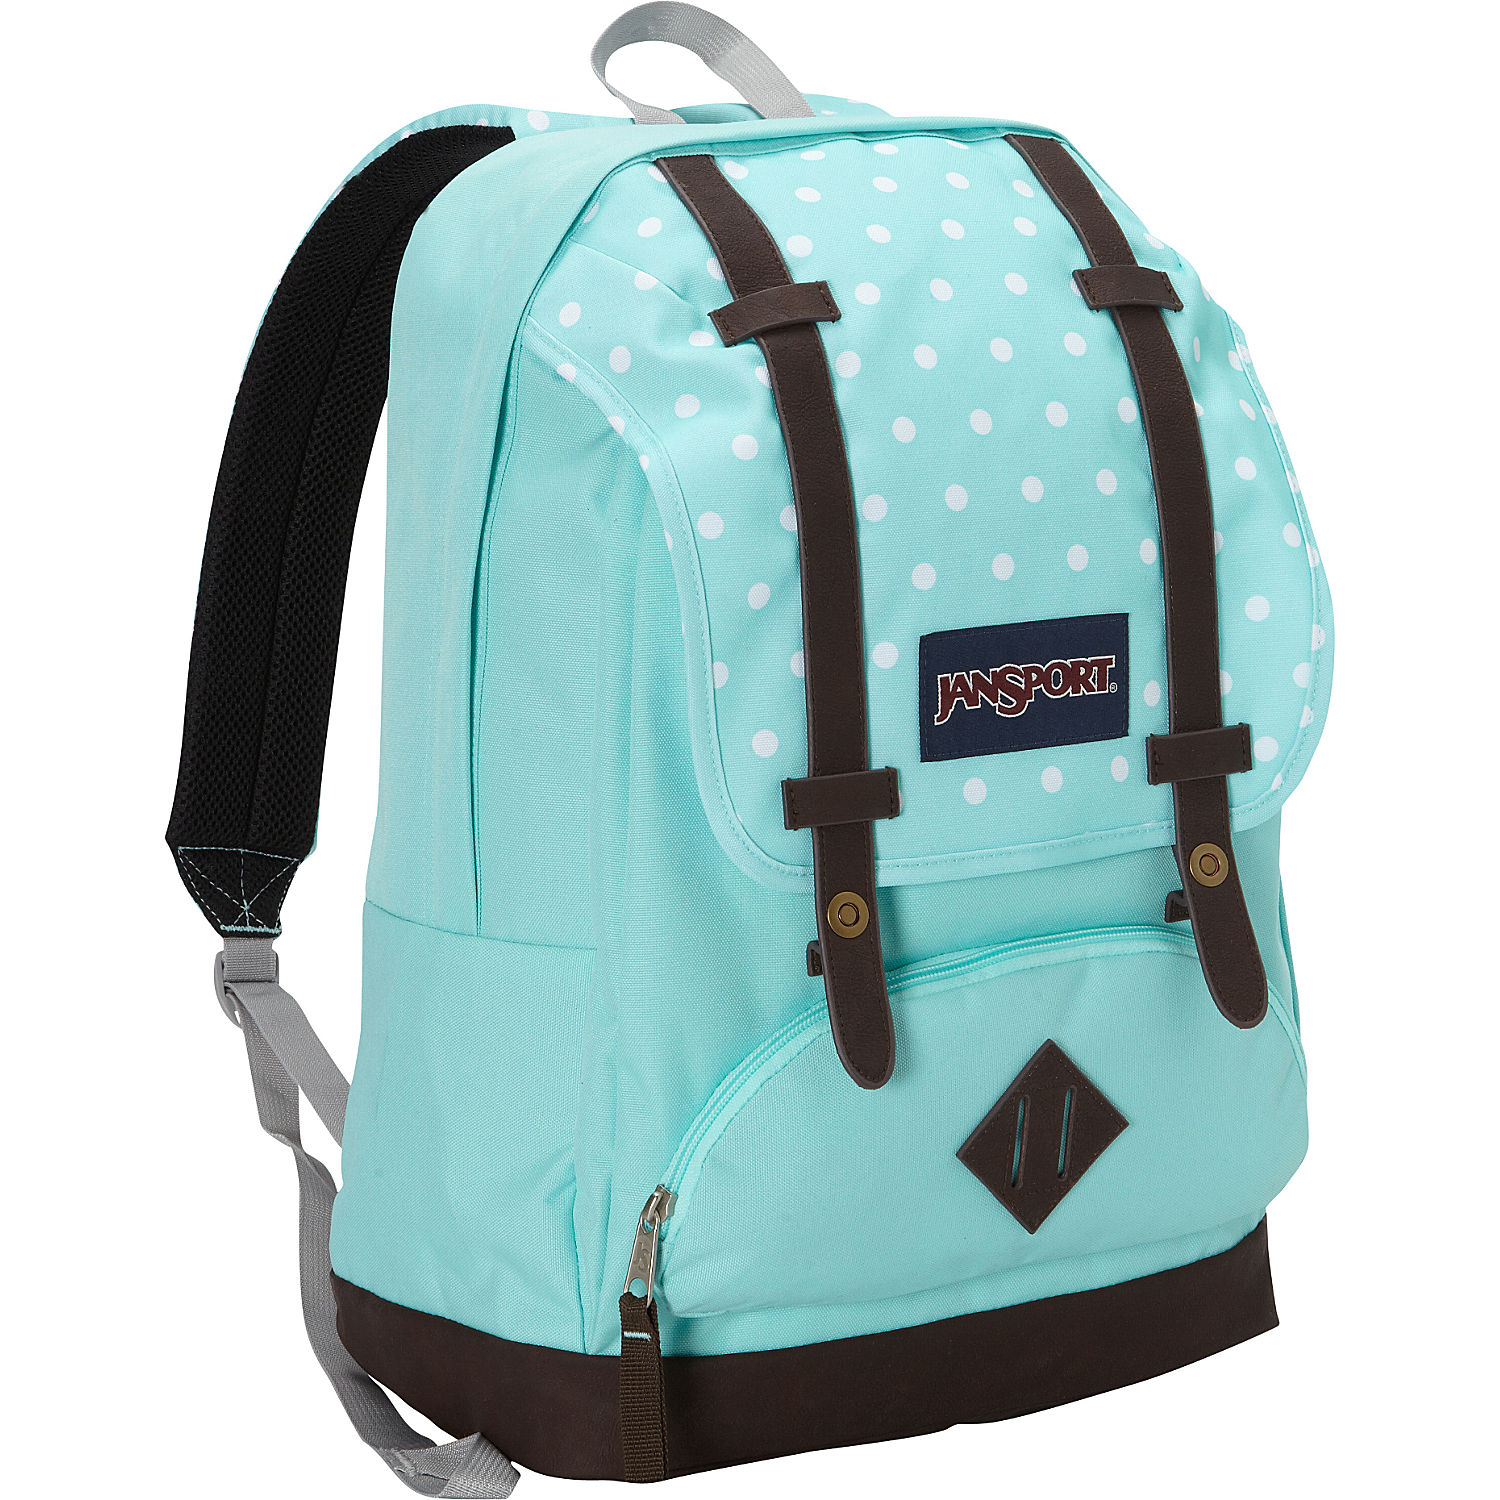 Where To Buy A Jansport Backpack For Cheap | Crazy Backpacks